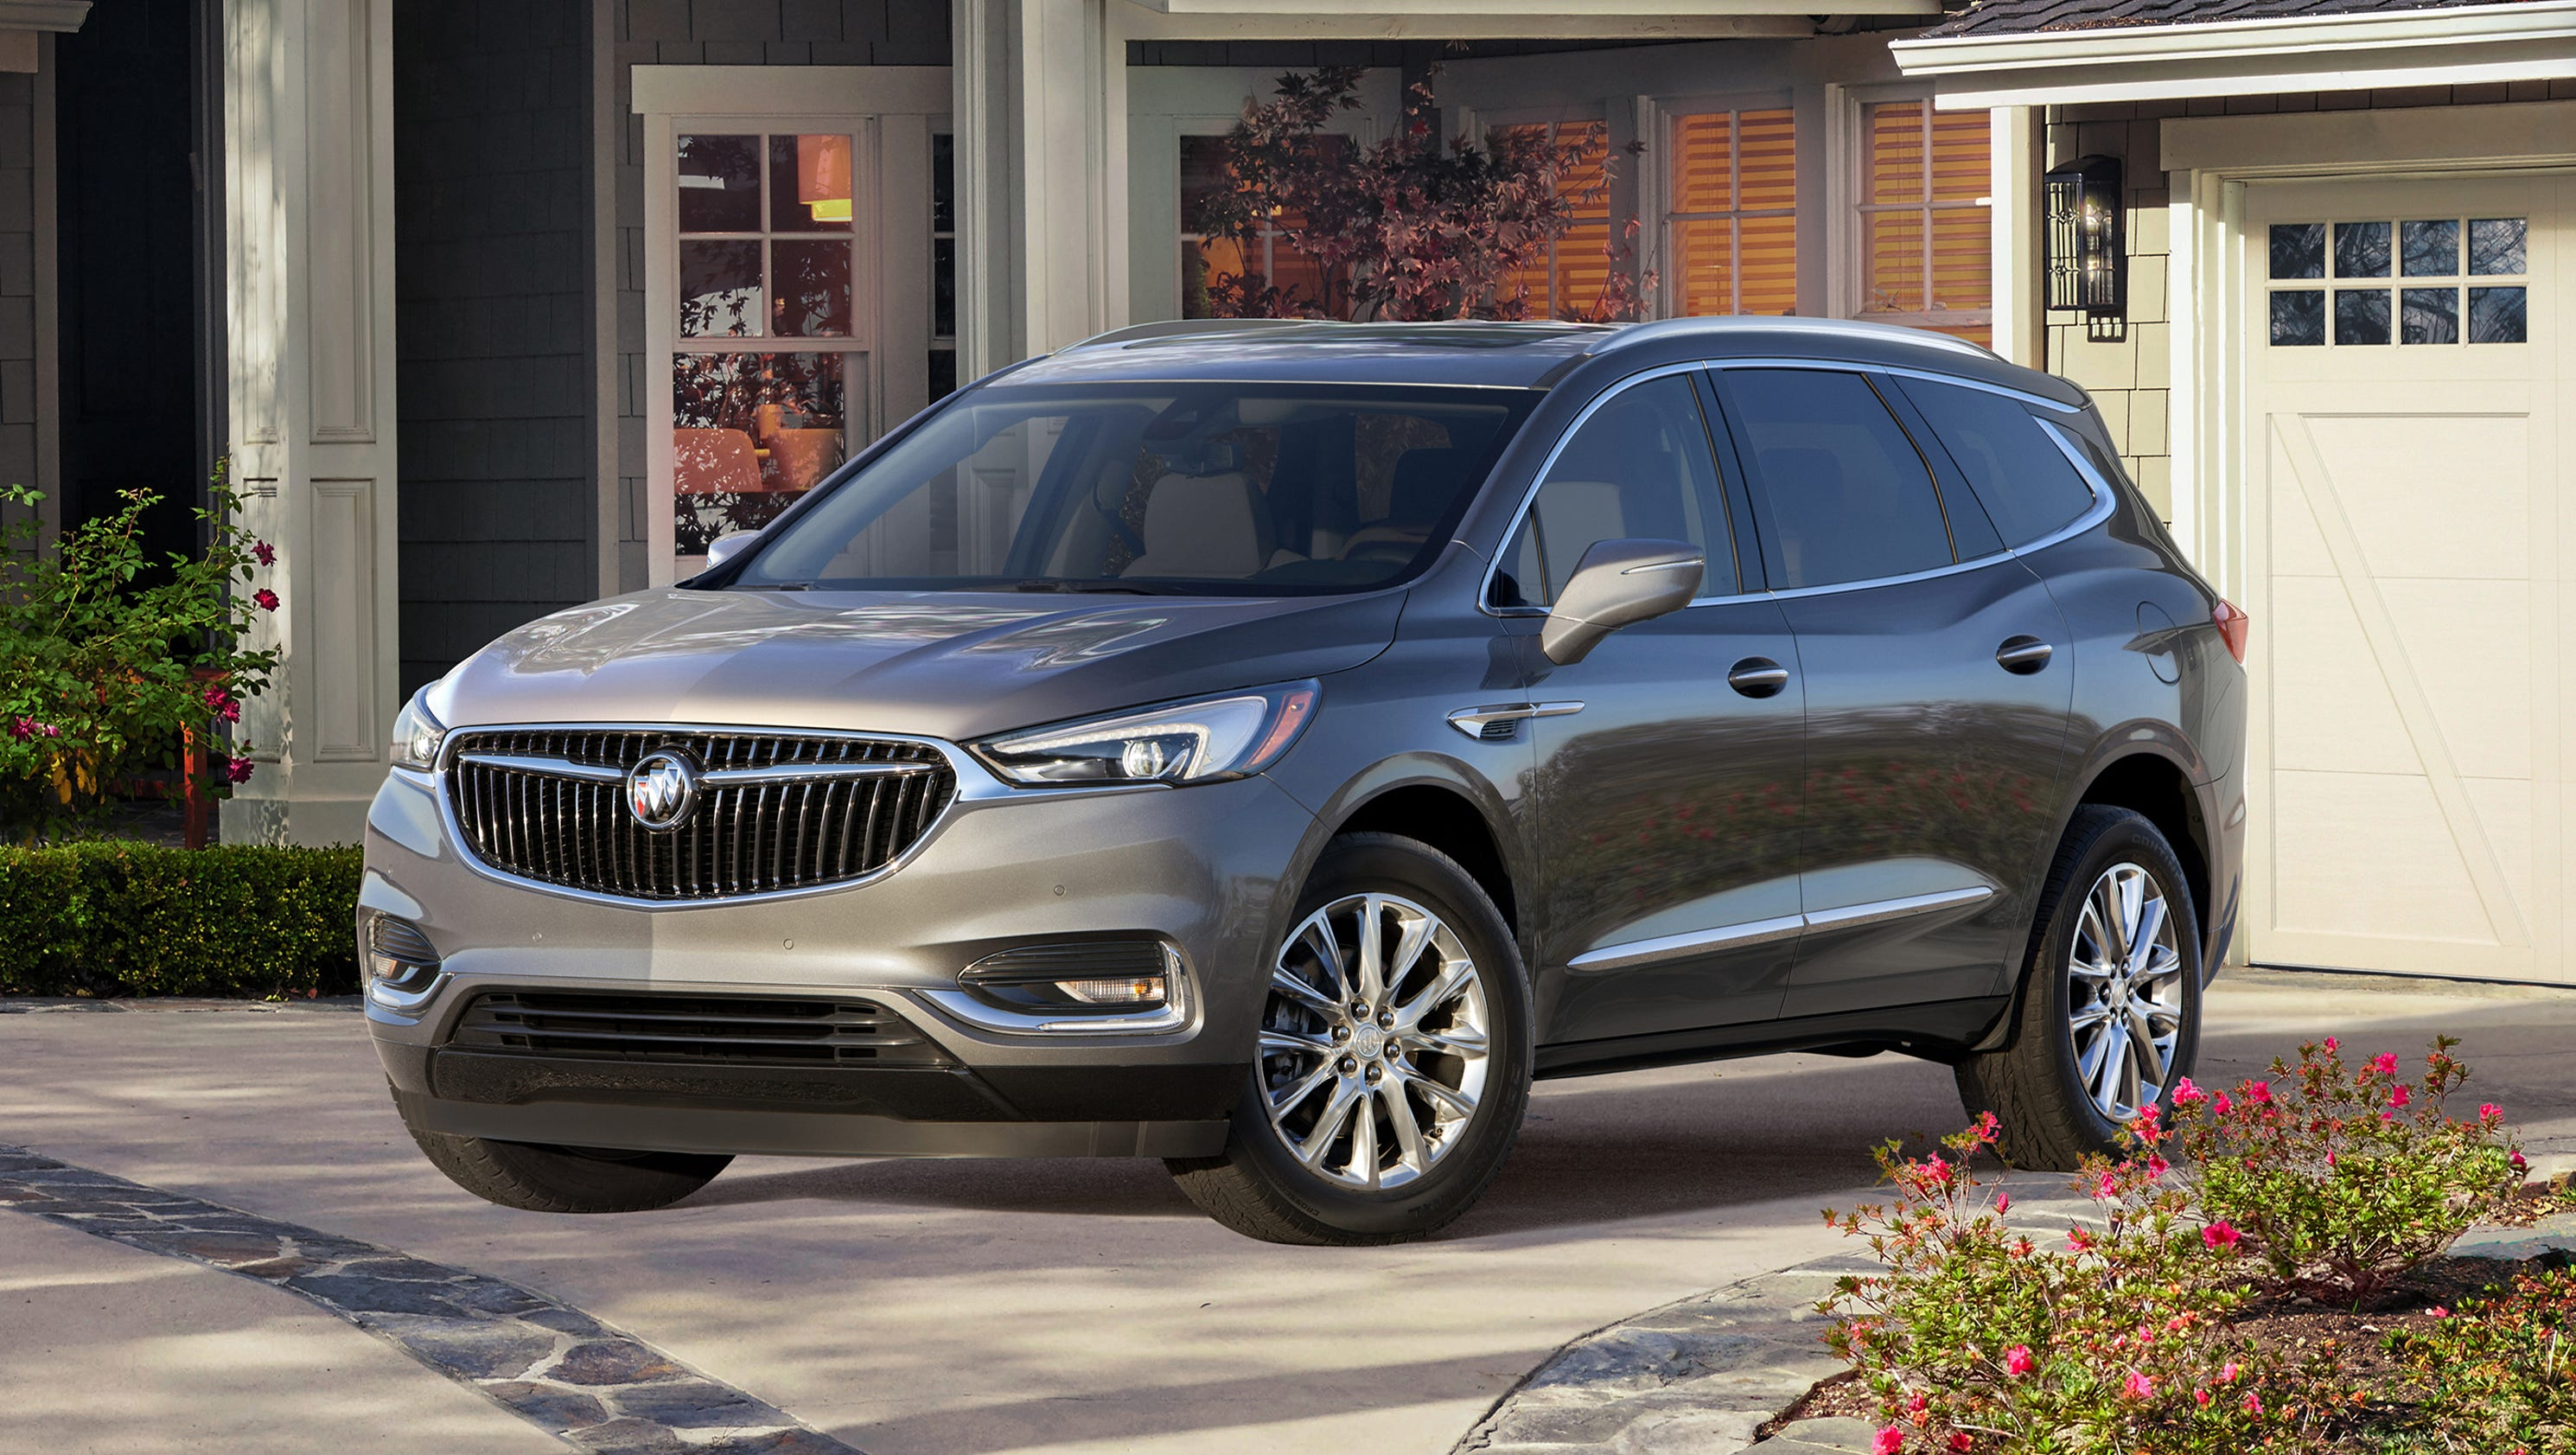 define nyas detail buick enclave en suv apr functionality all news mid and pages elegant design media new home size the content us